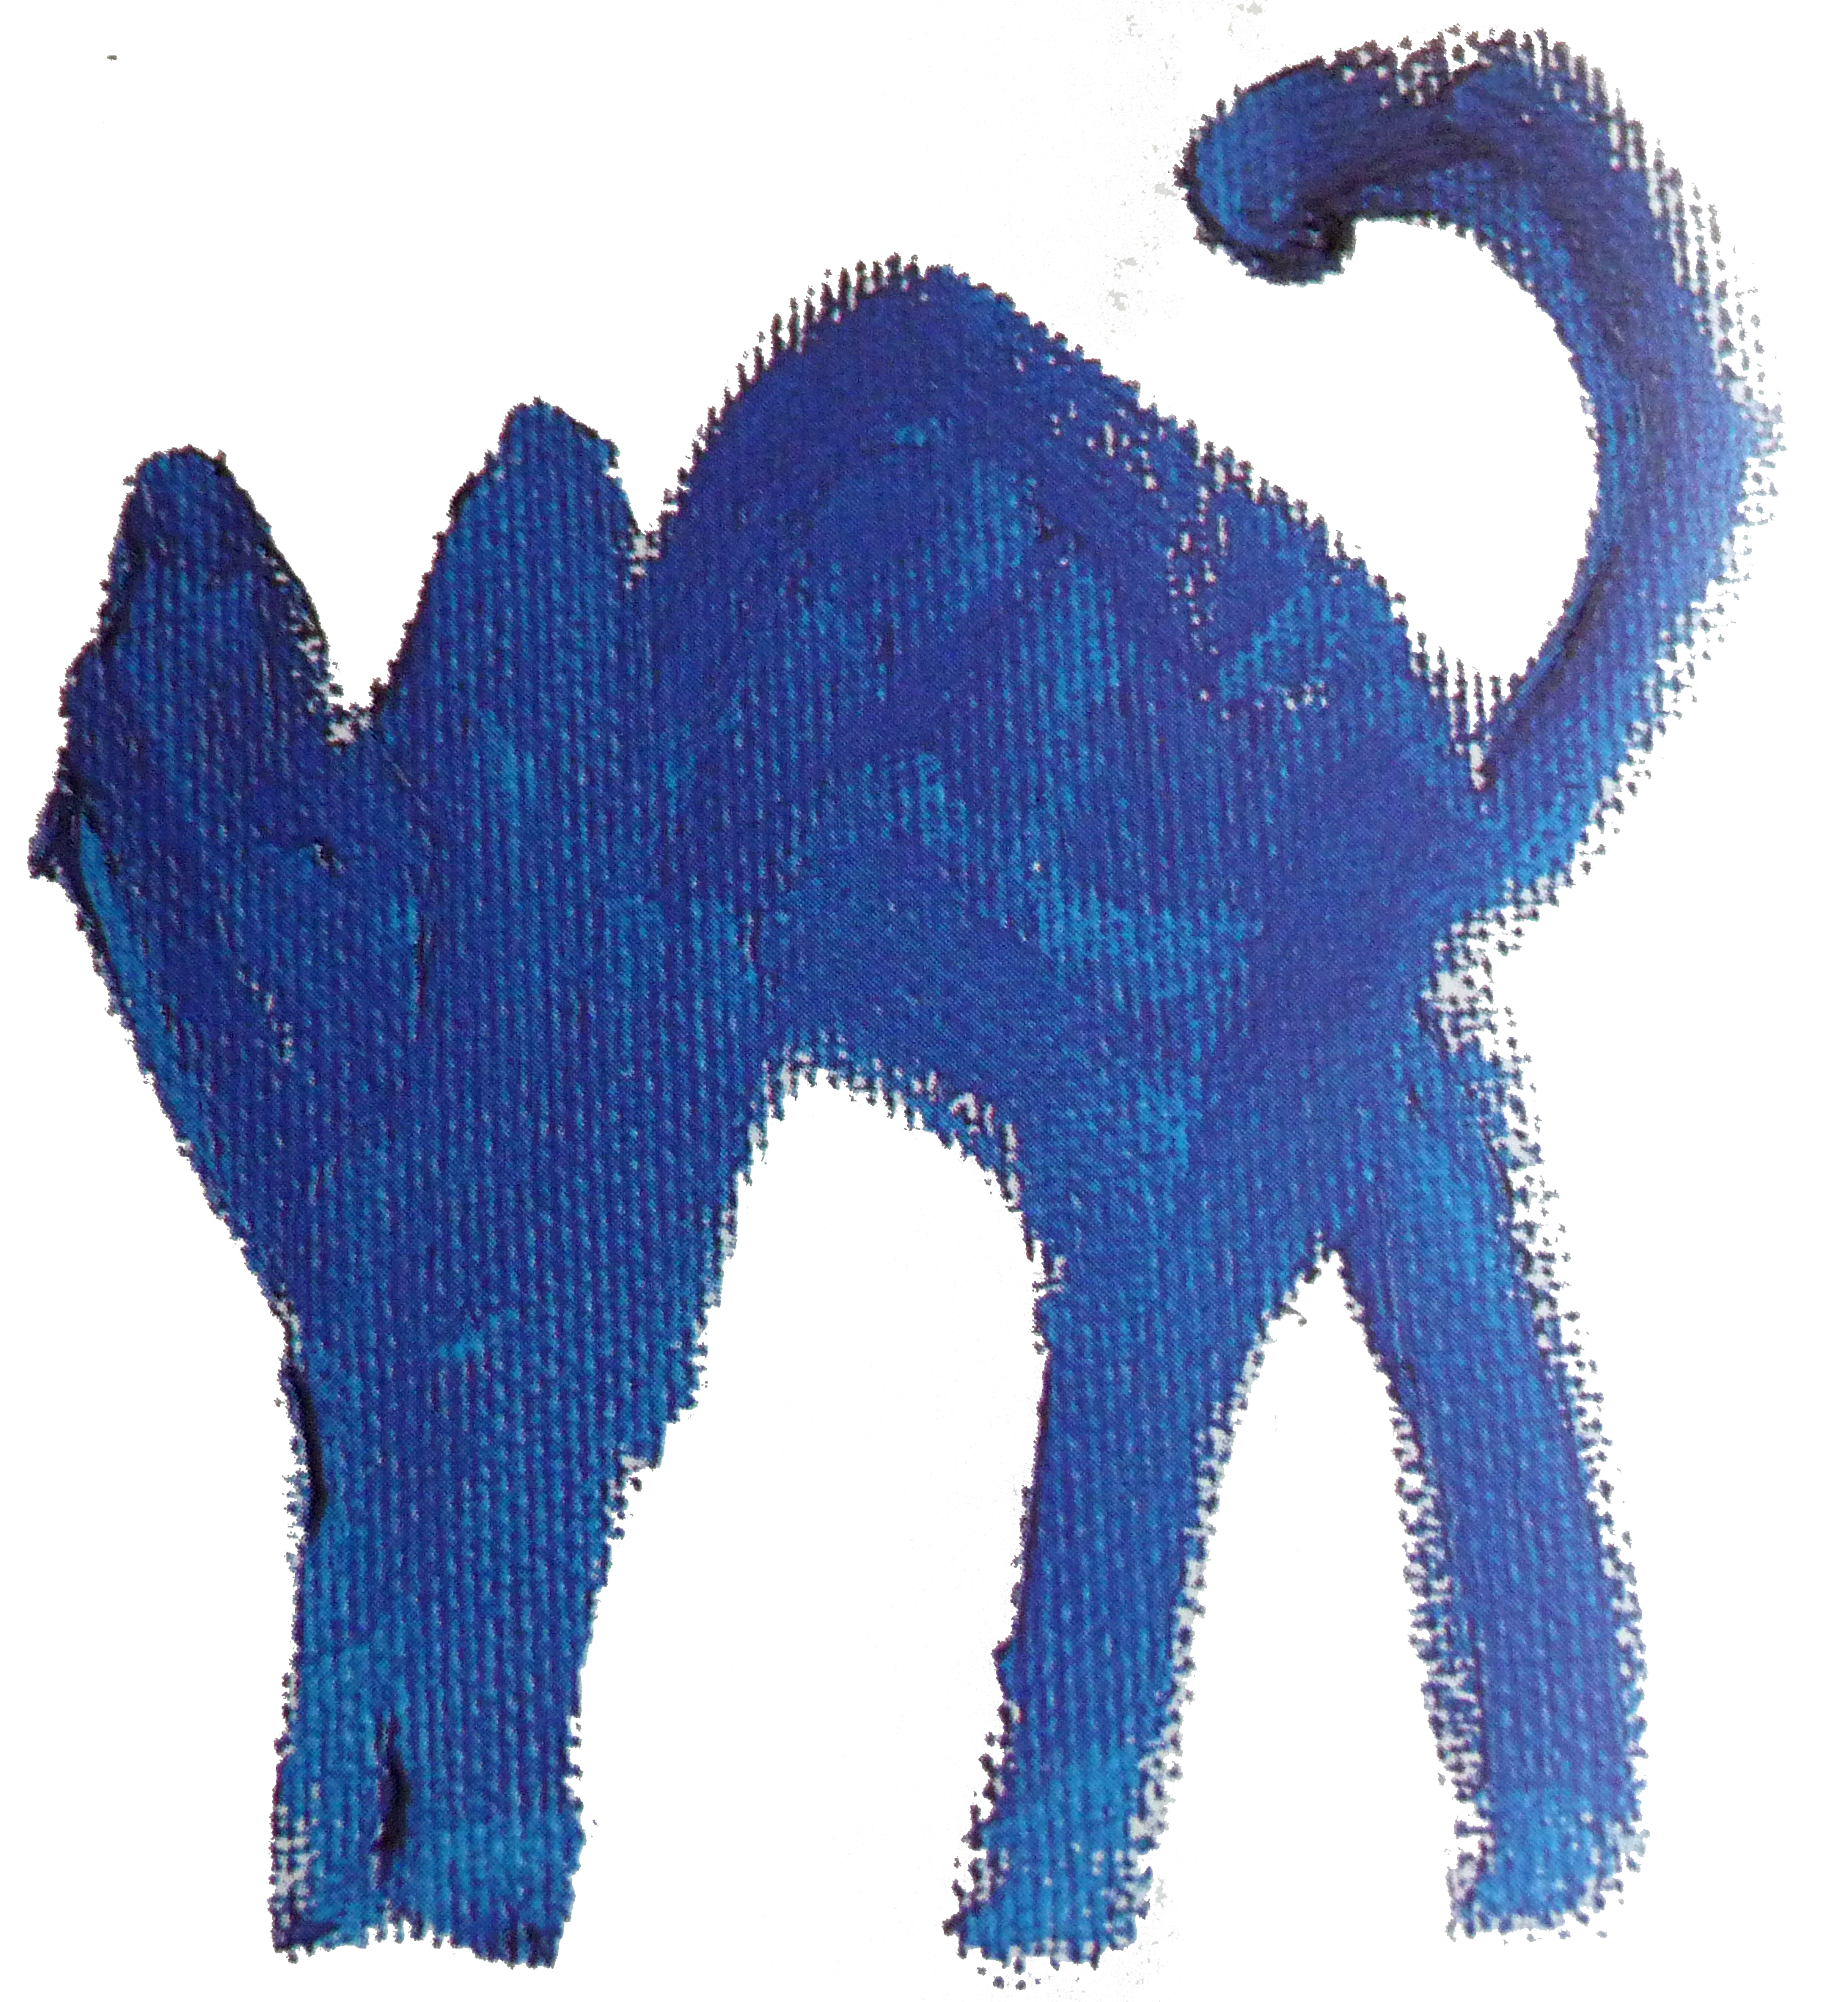 chat bleu abstrait